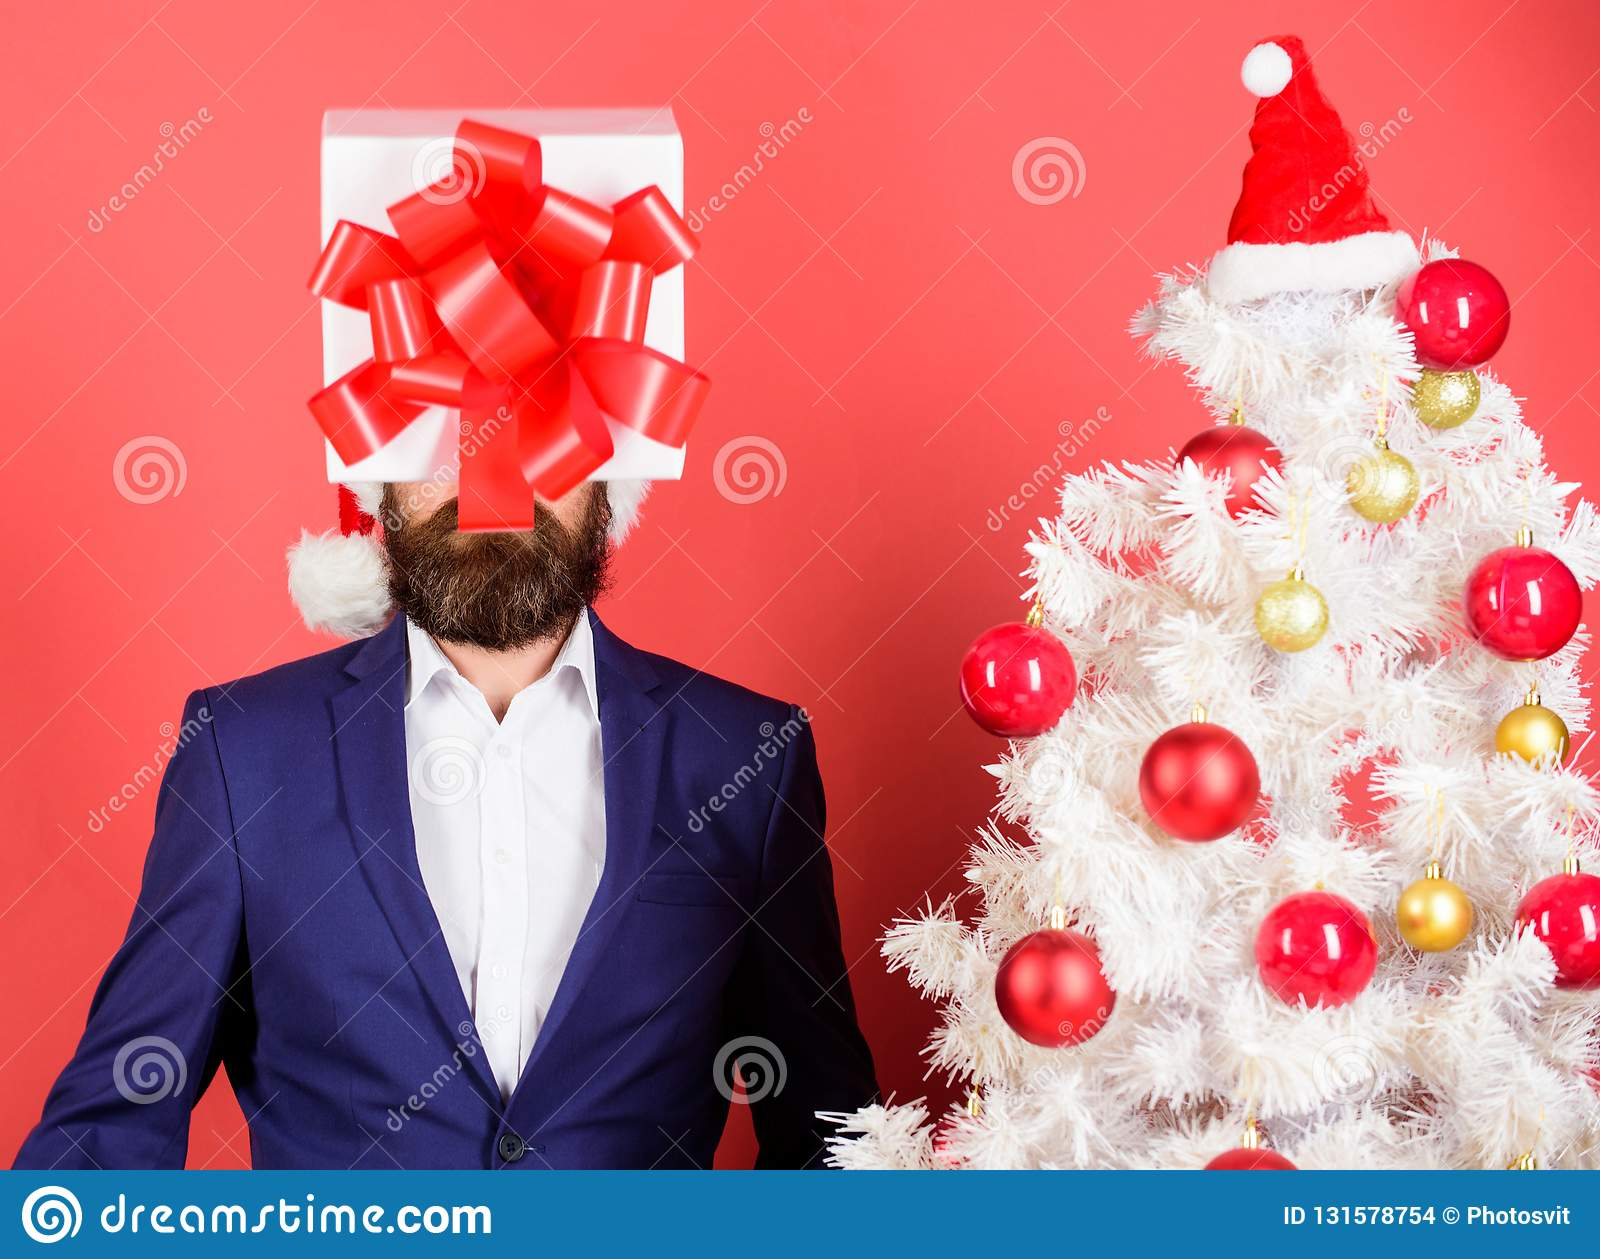 Come up with good present. Gift service. Head downtrodden with thoughts what to gift. Man bearded formal suit carry gift